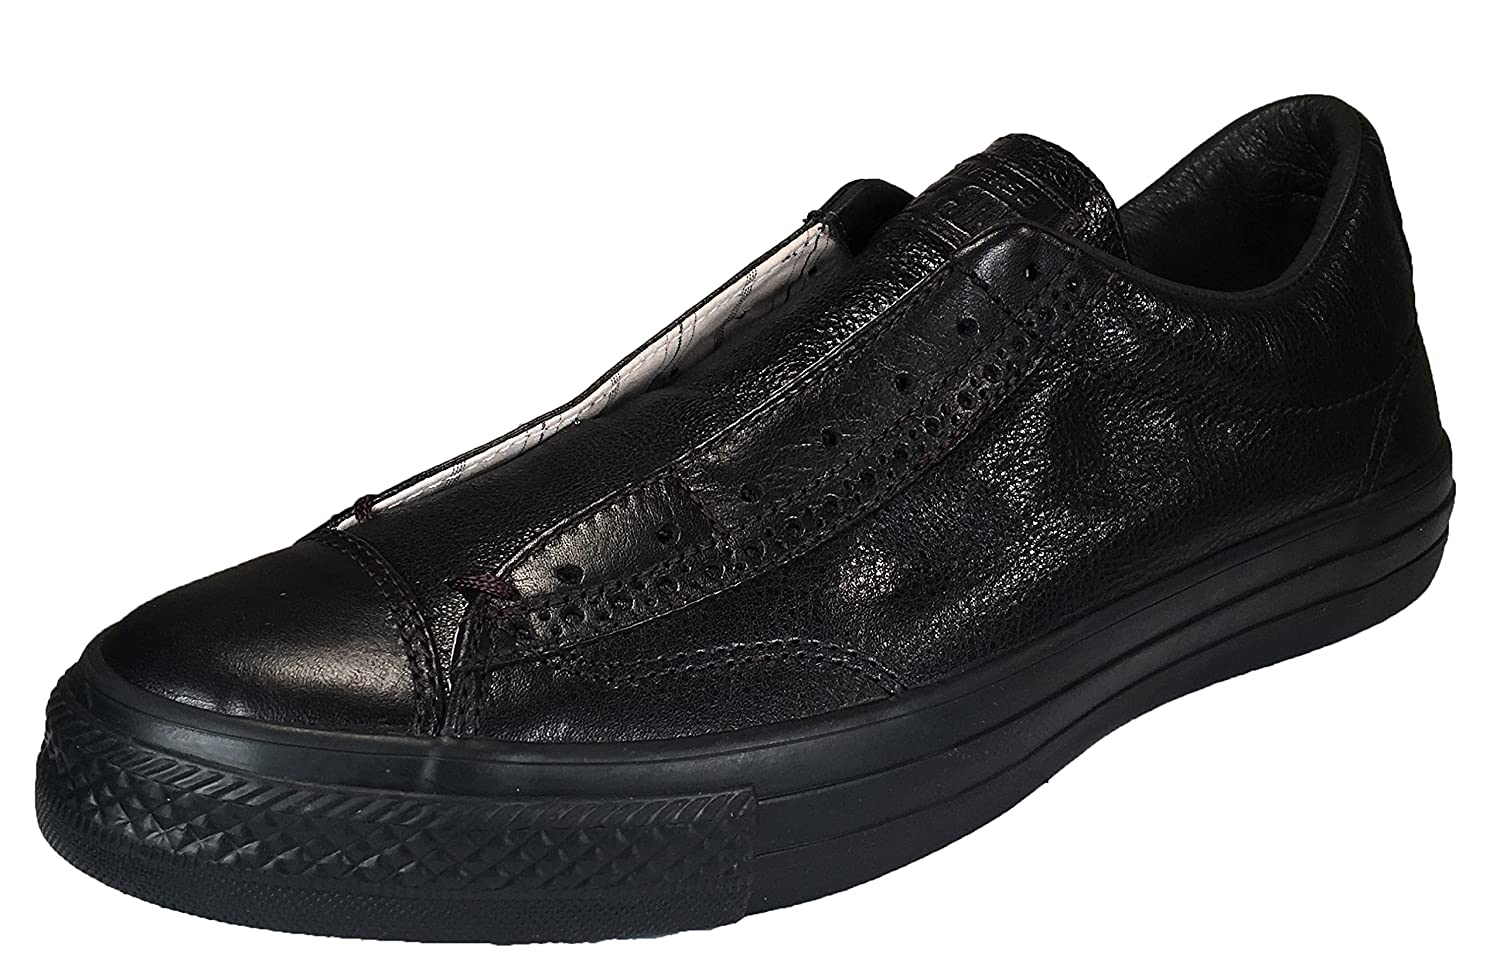 Converse by John Varvatos Leather Vintage Slip On 9 Sneaker Black Mono B01IRXC1M6 9 On Women / 7 Men M US 307cb9